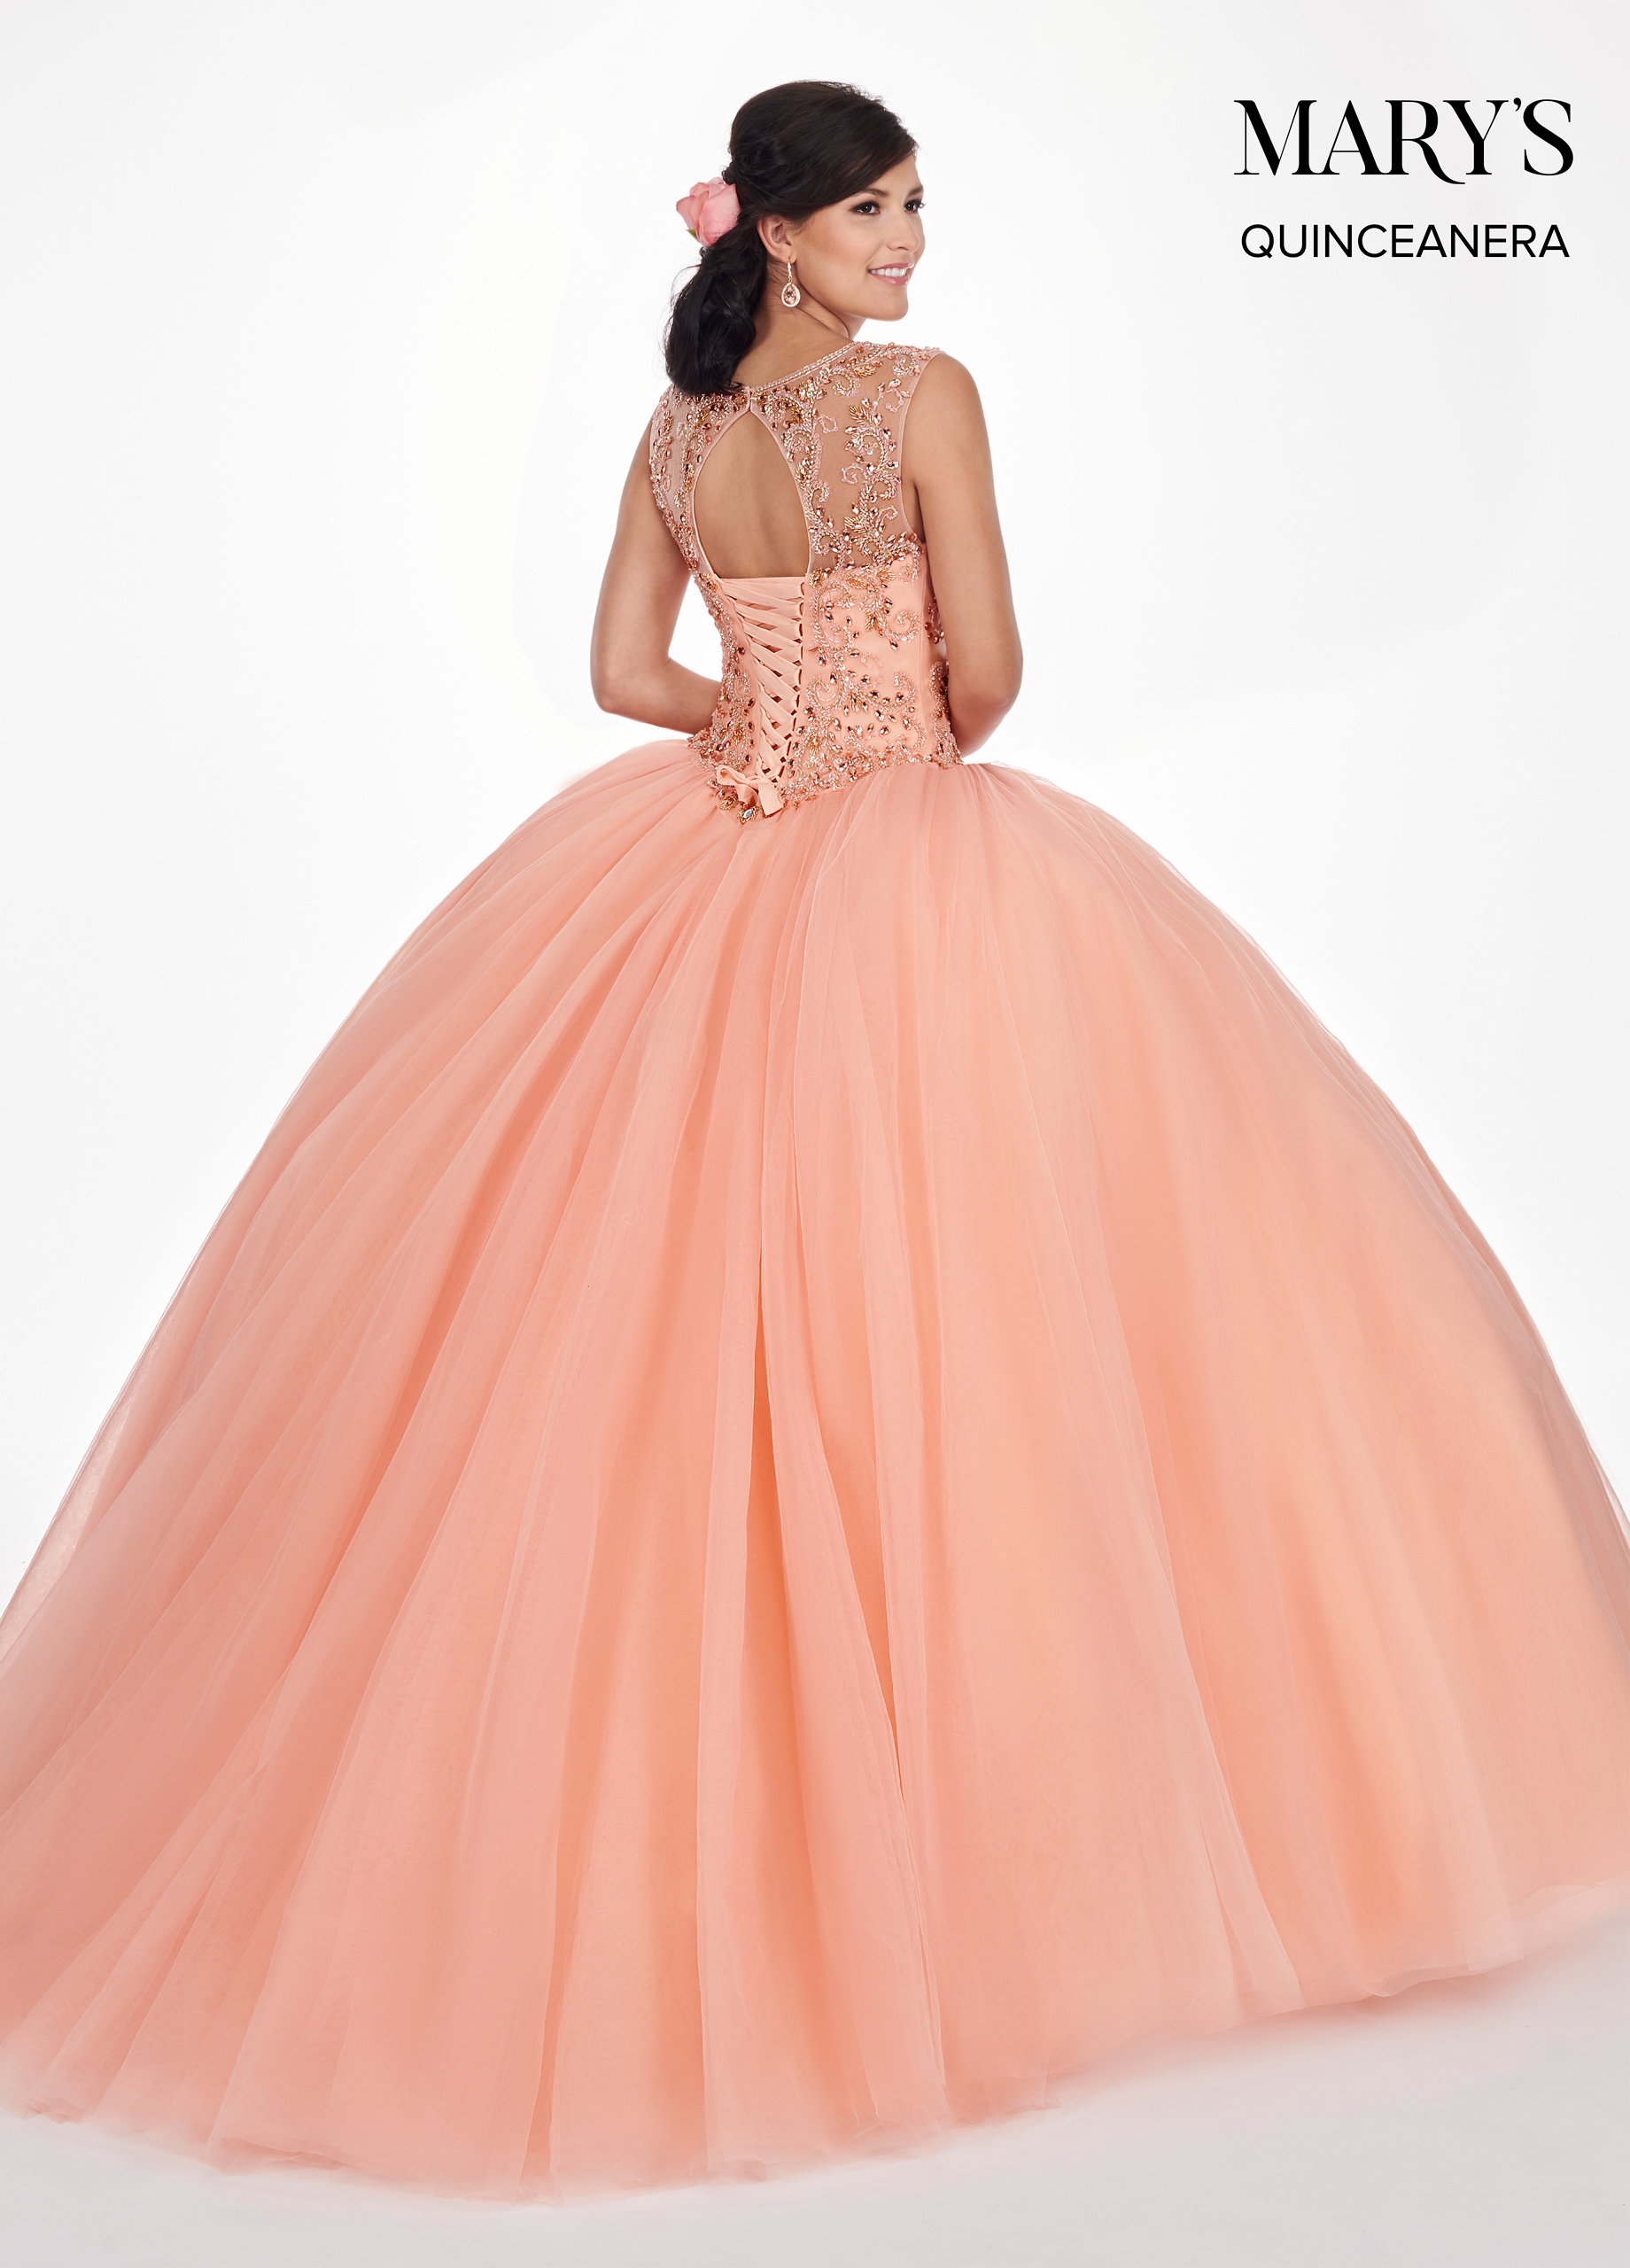 Marys Quinceanera Dresses | Mary's Quinceanera | Style - MQ1041